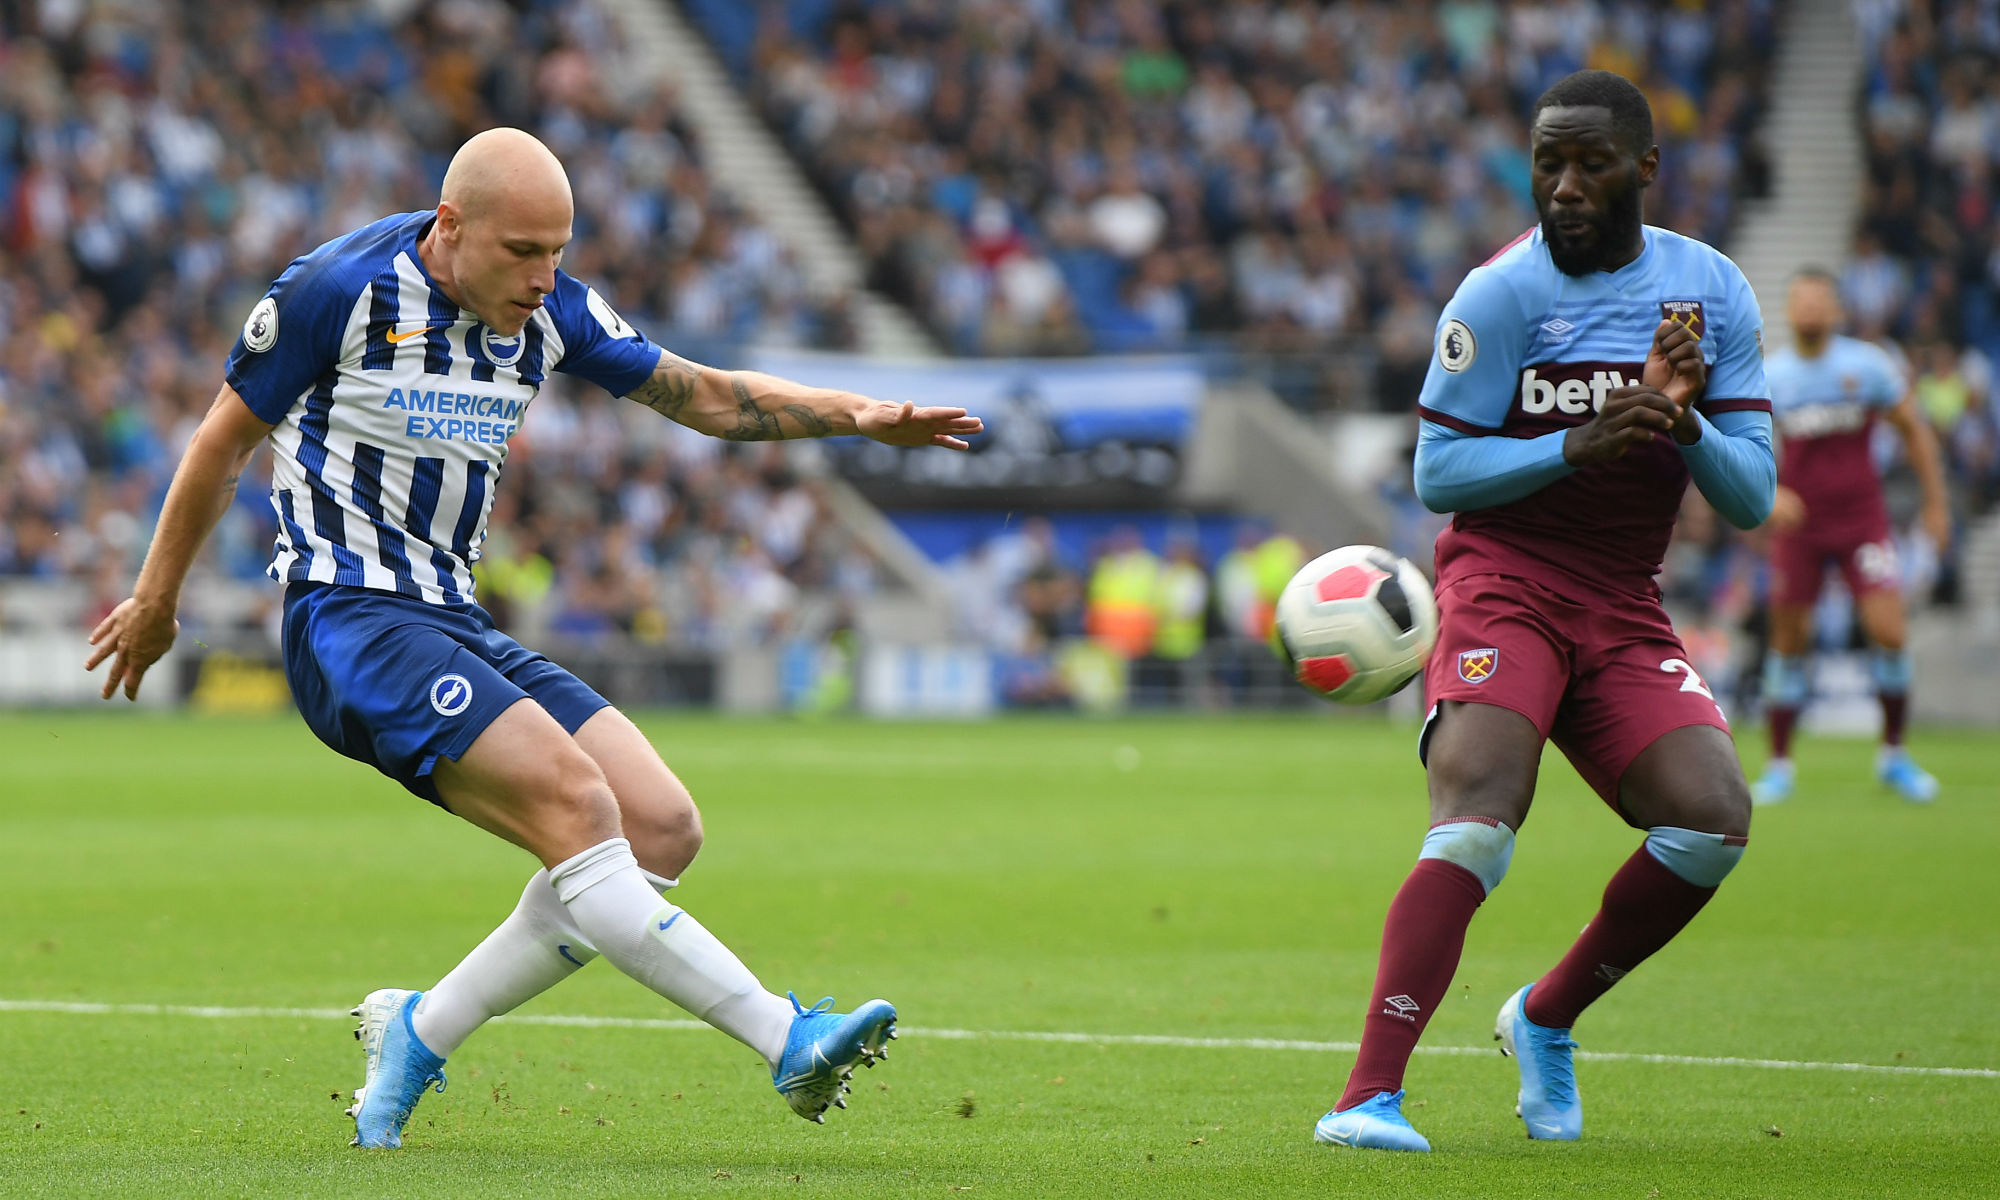 Aussies Abroad: Mooy makes Brighton bow as Ryan helps secure draw with West Ham